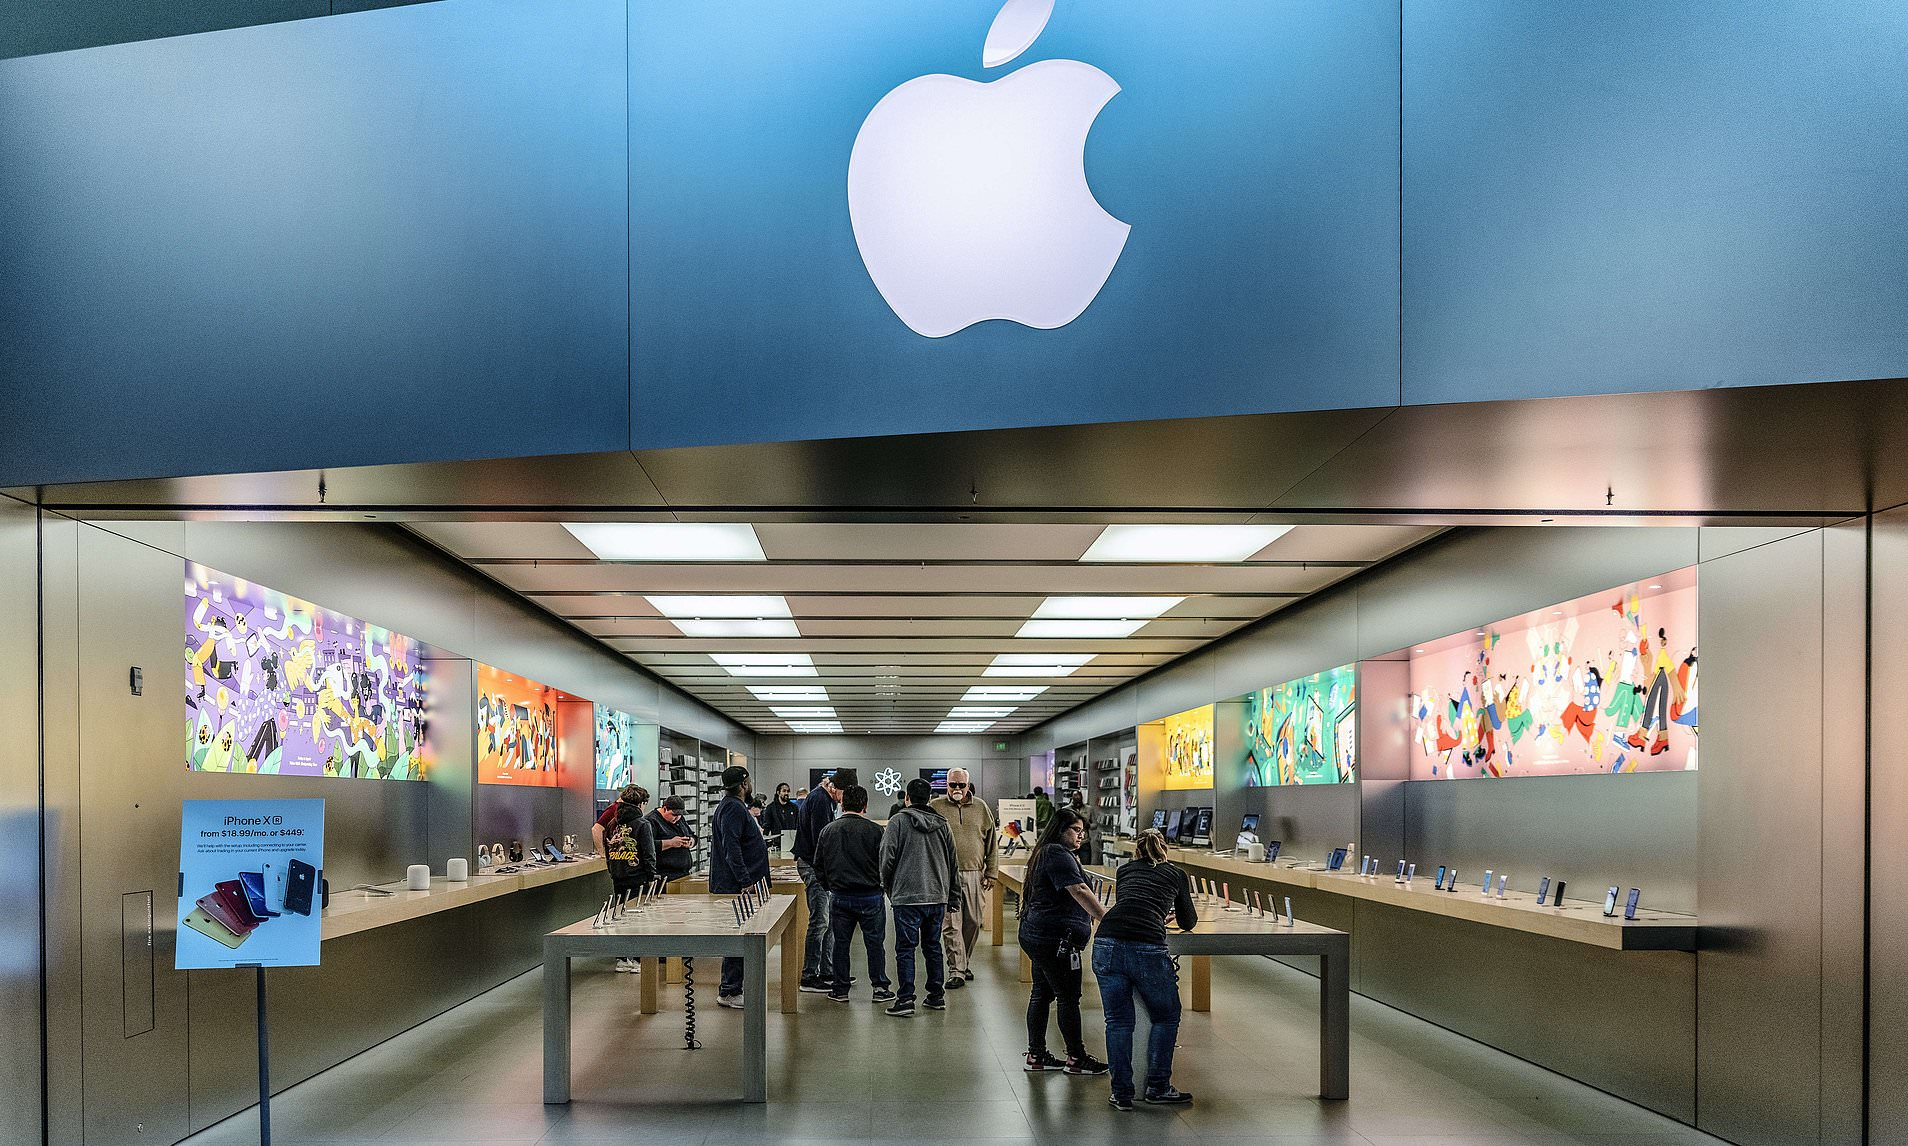 Teen sues Apple for $1 billion over theft charge